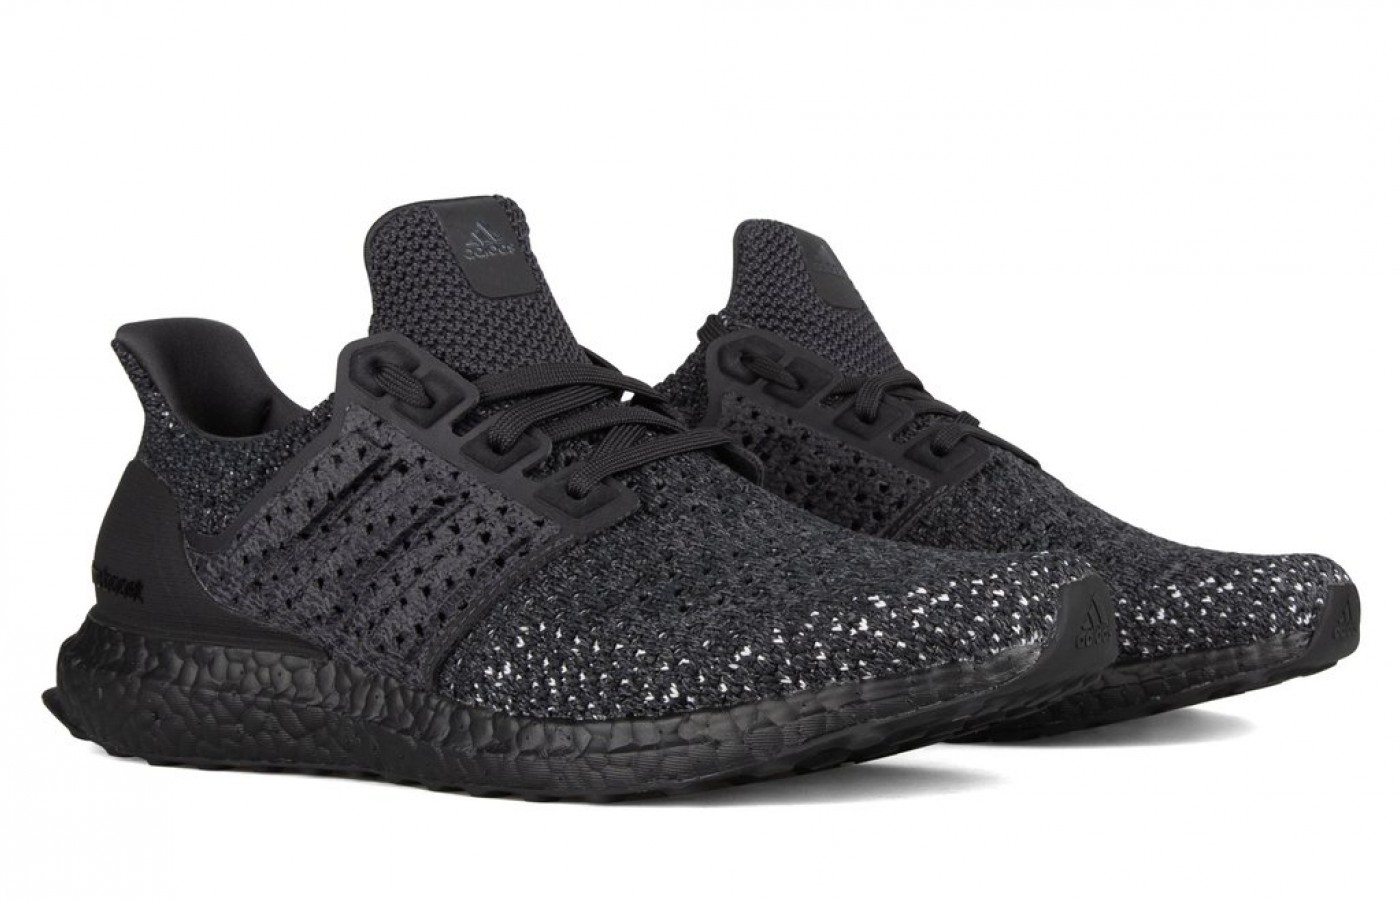 b2f4e0b56 Adidas UltraBoost Clima Reviewed for Performance in 2019